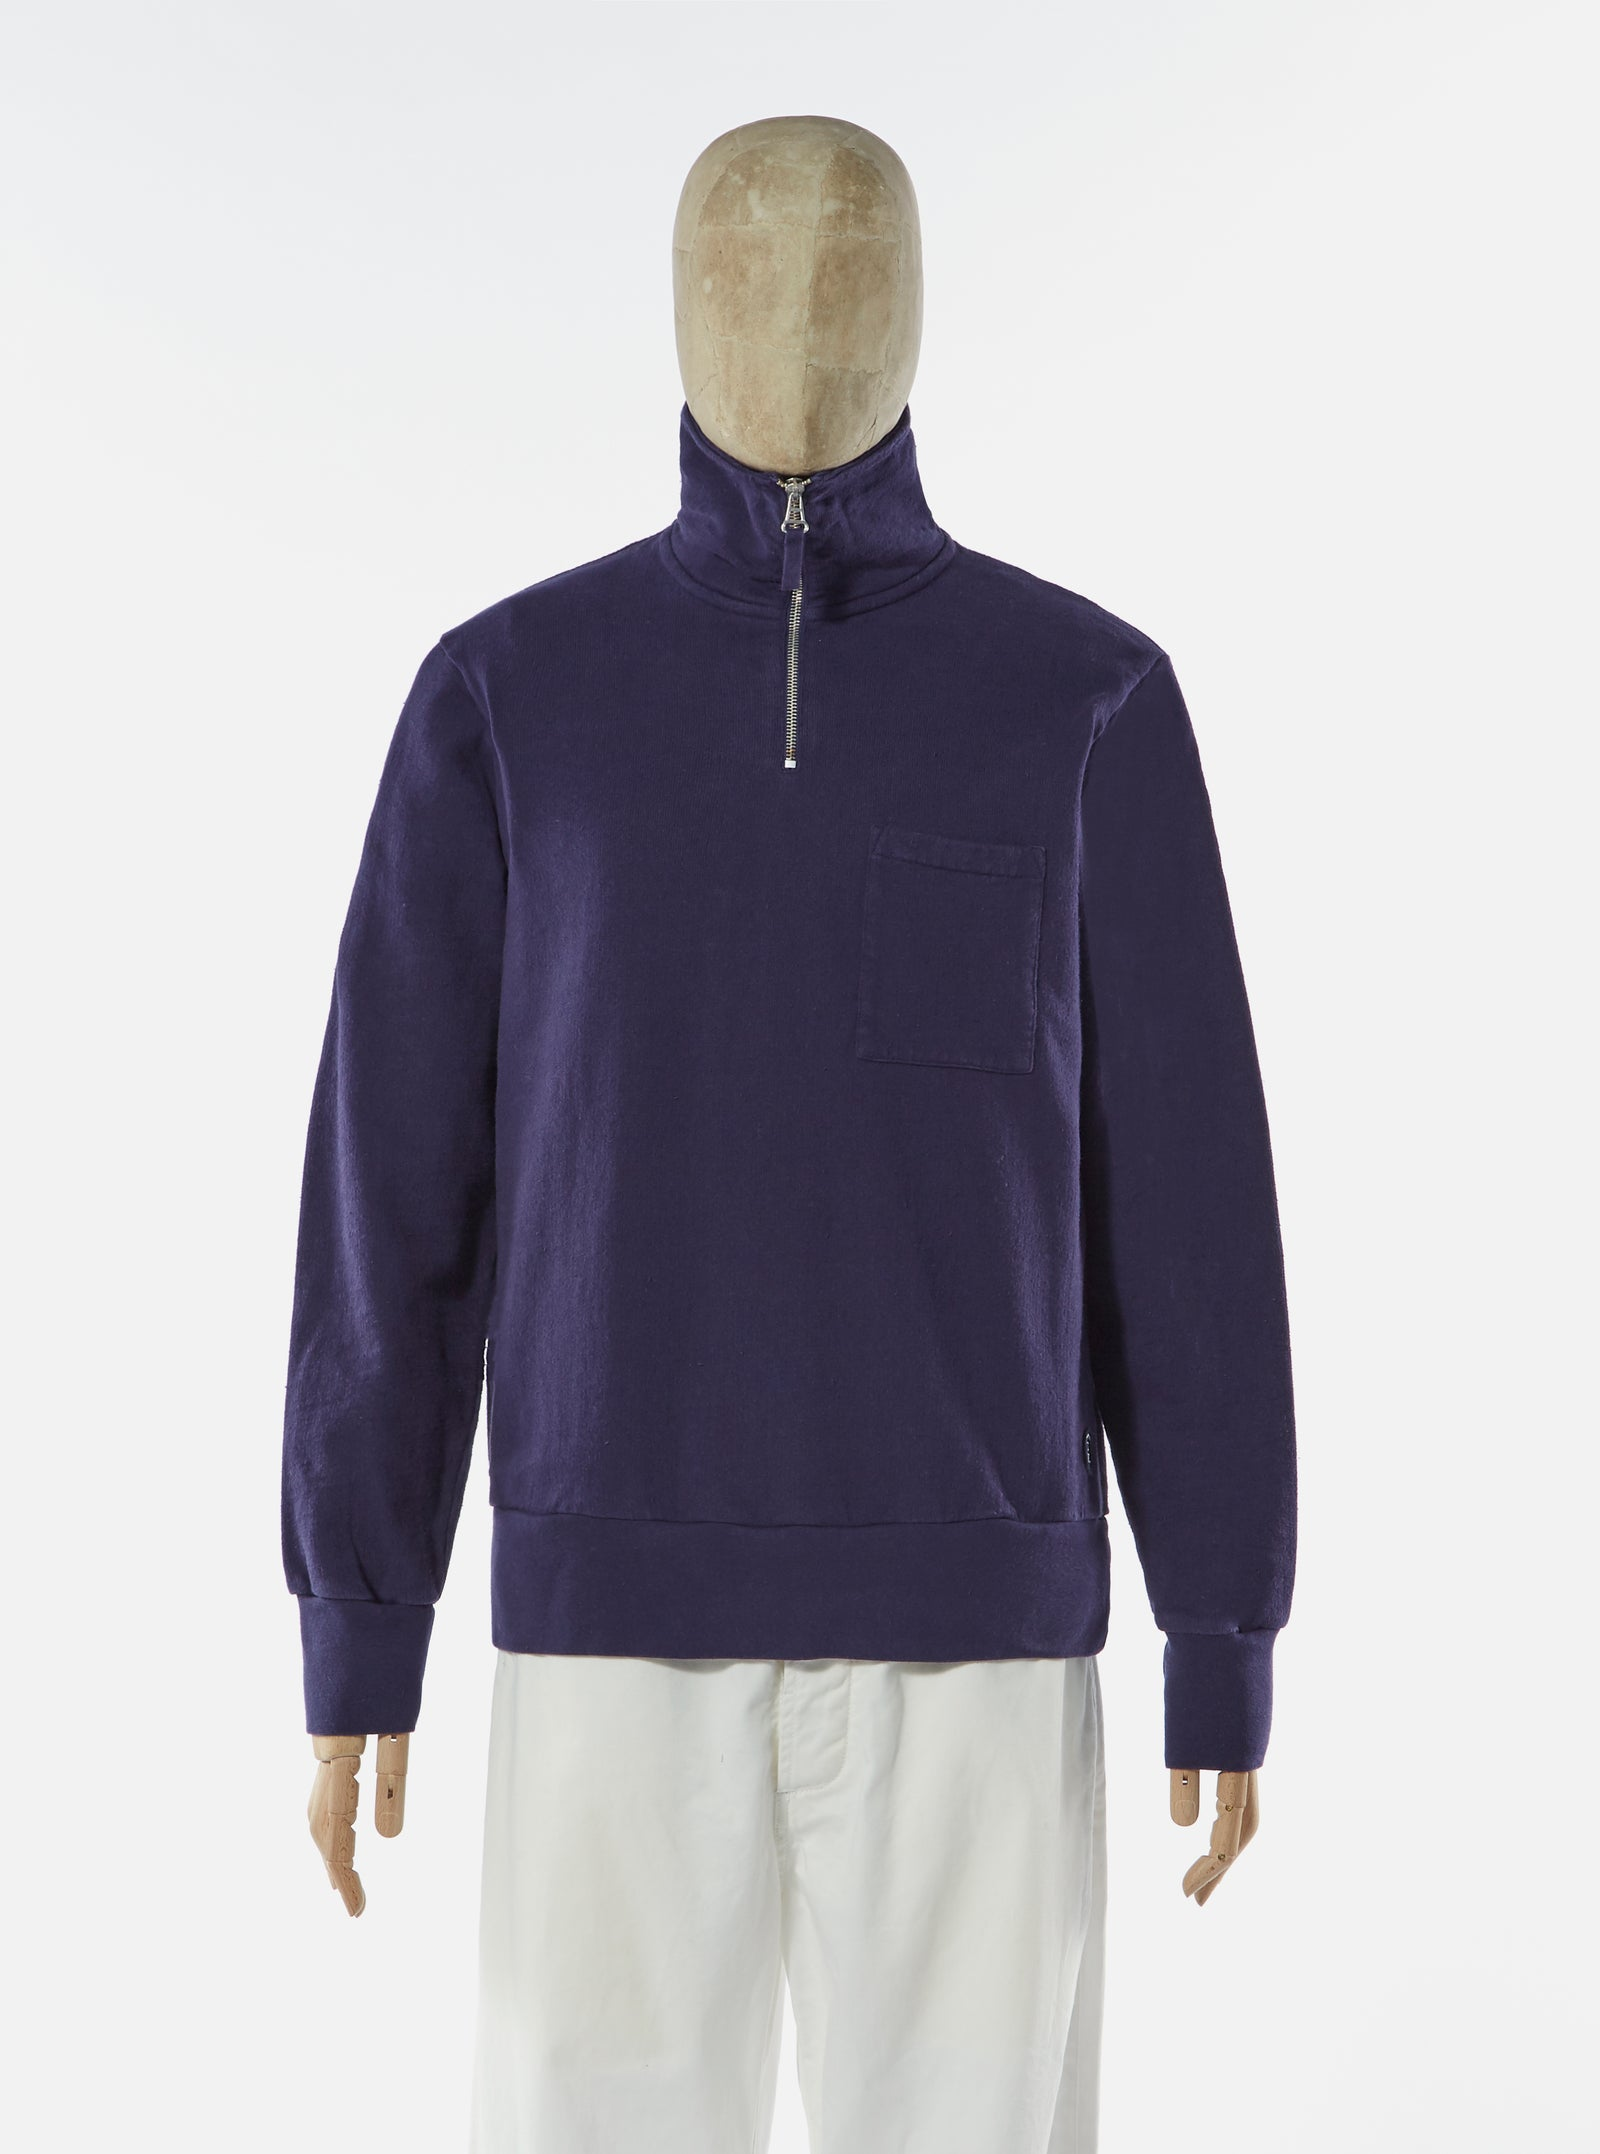 Universal Works Half Zip Sweatshirt in Navy Dry Handle Loopback